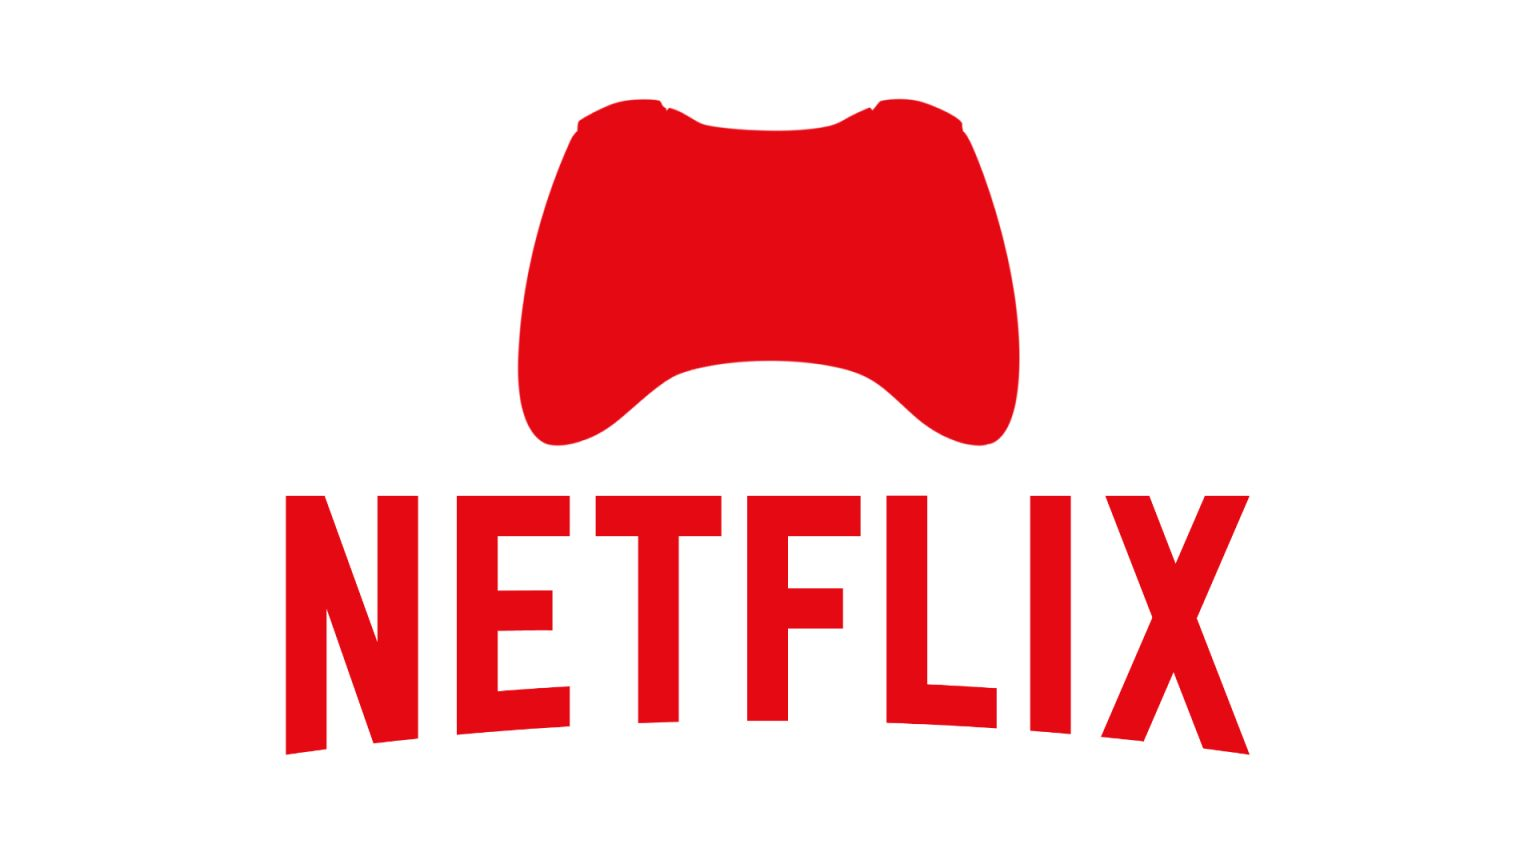 Netflix could get into gaming